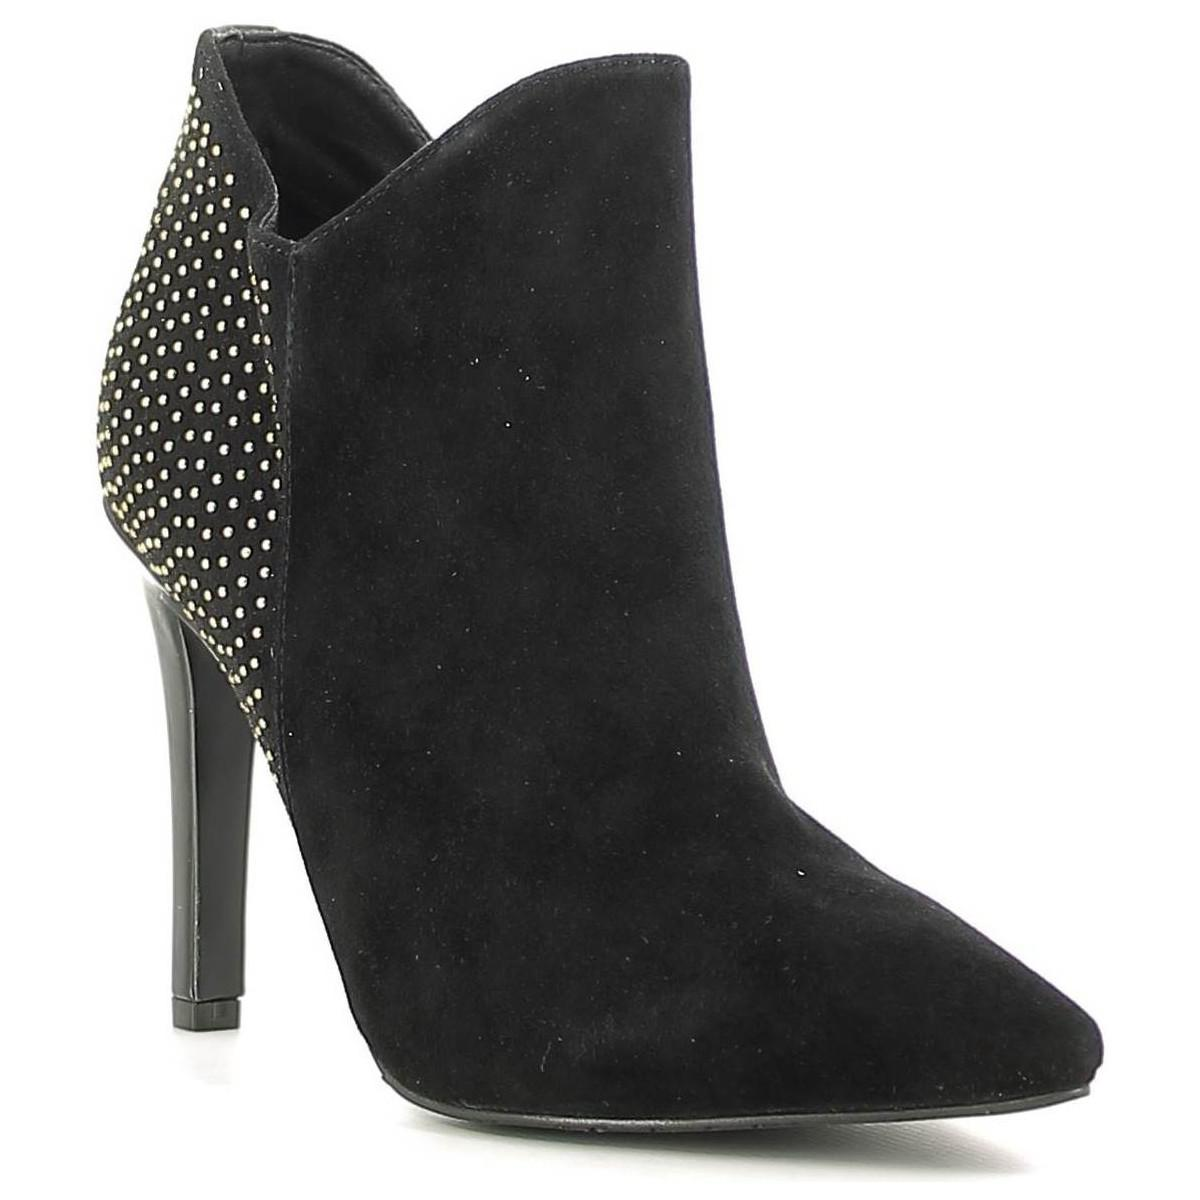 GAUDI V64-64939 Ankle Boots Women Black Women's Mid Boots In Black